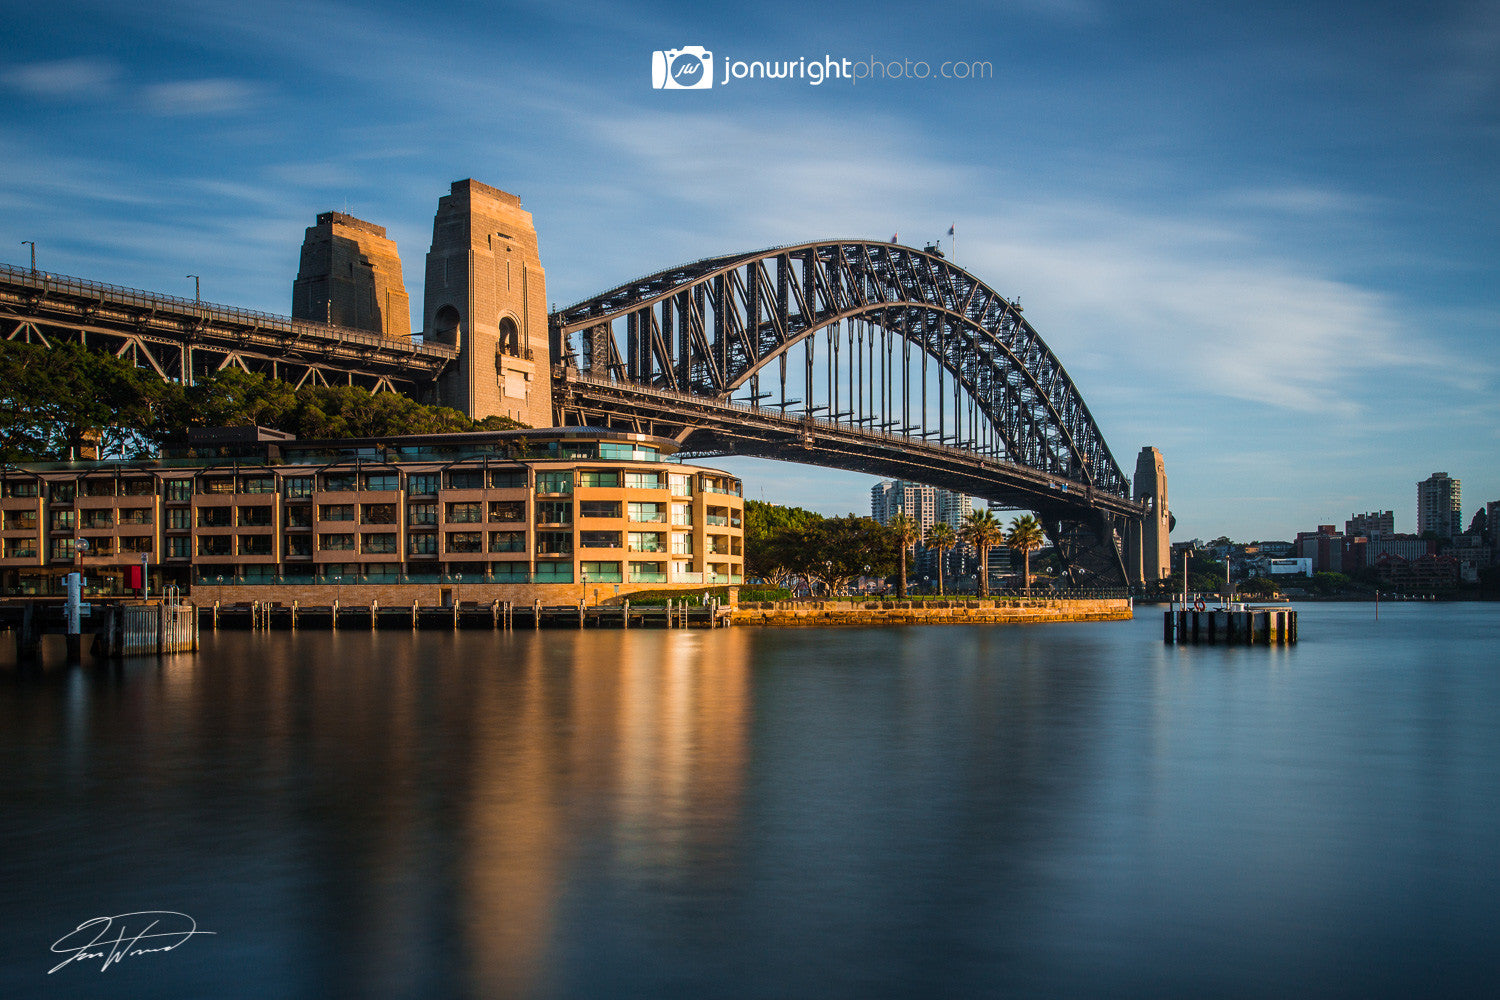 Sydney Harbour Bridge #2 - Sydney, NSW Australia